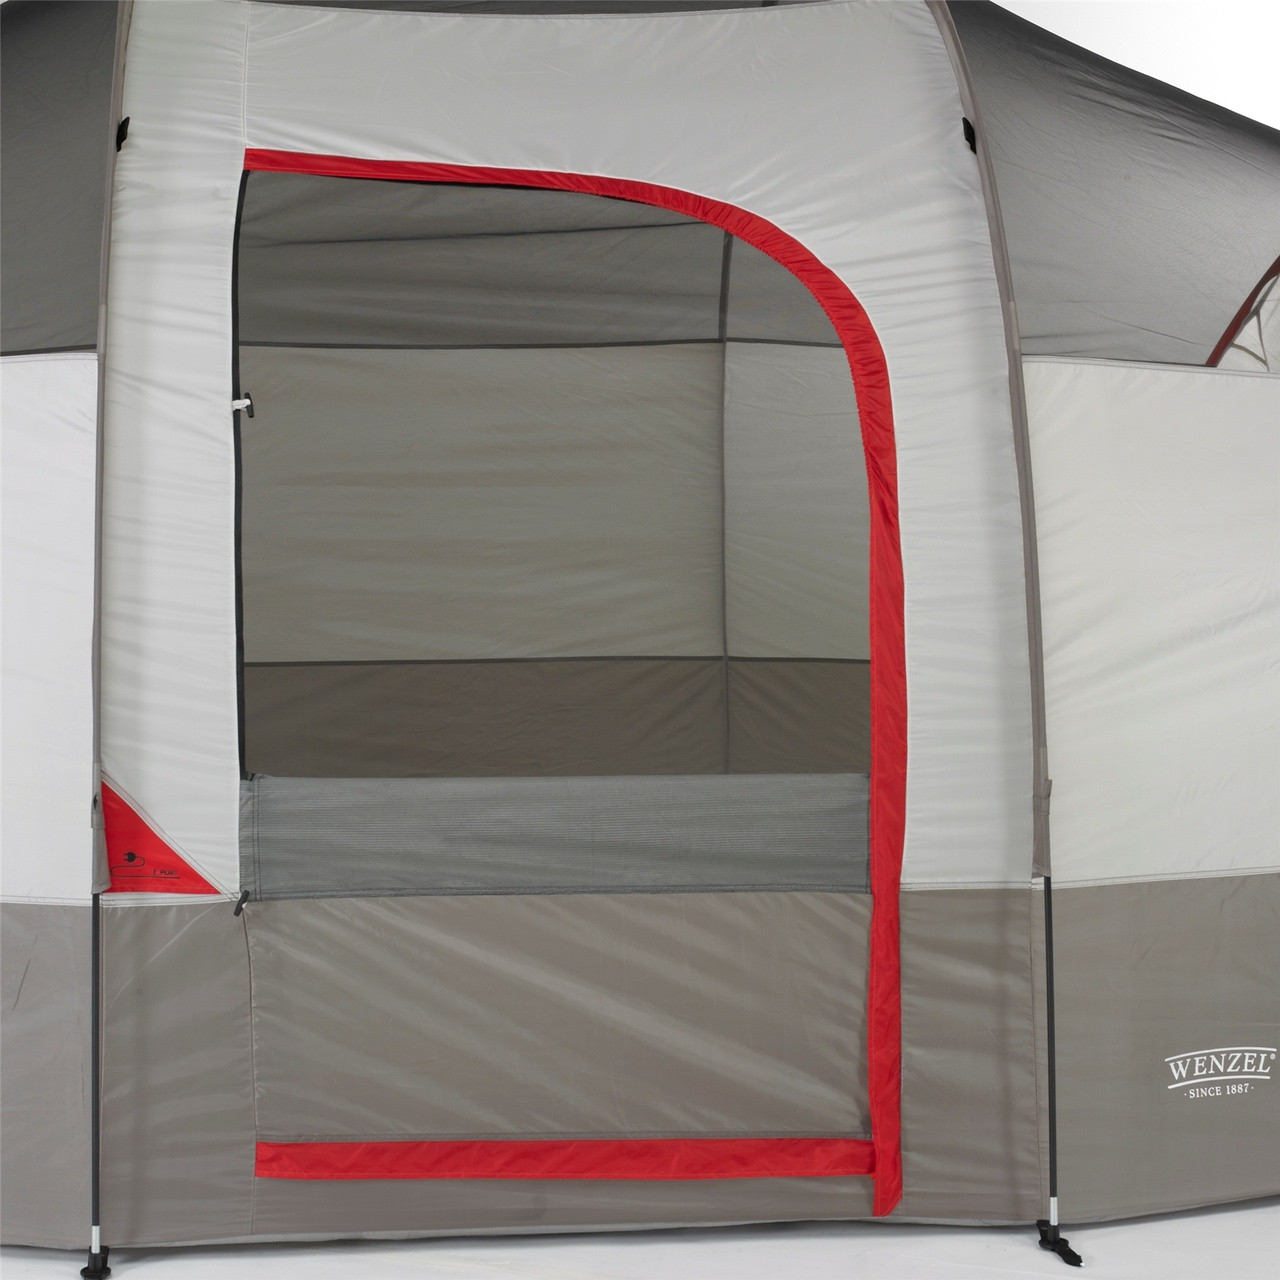 Close up view of the front door on the Wenzel Blue Ridge 7 Tent, gray and white with red accents, with the screen door open showing the interior of the tent